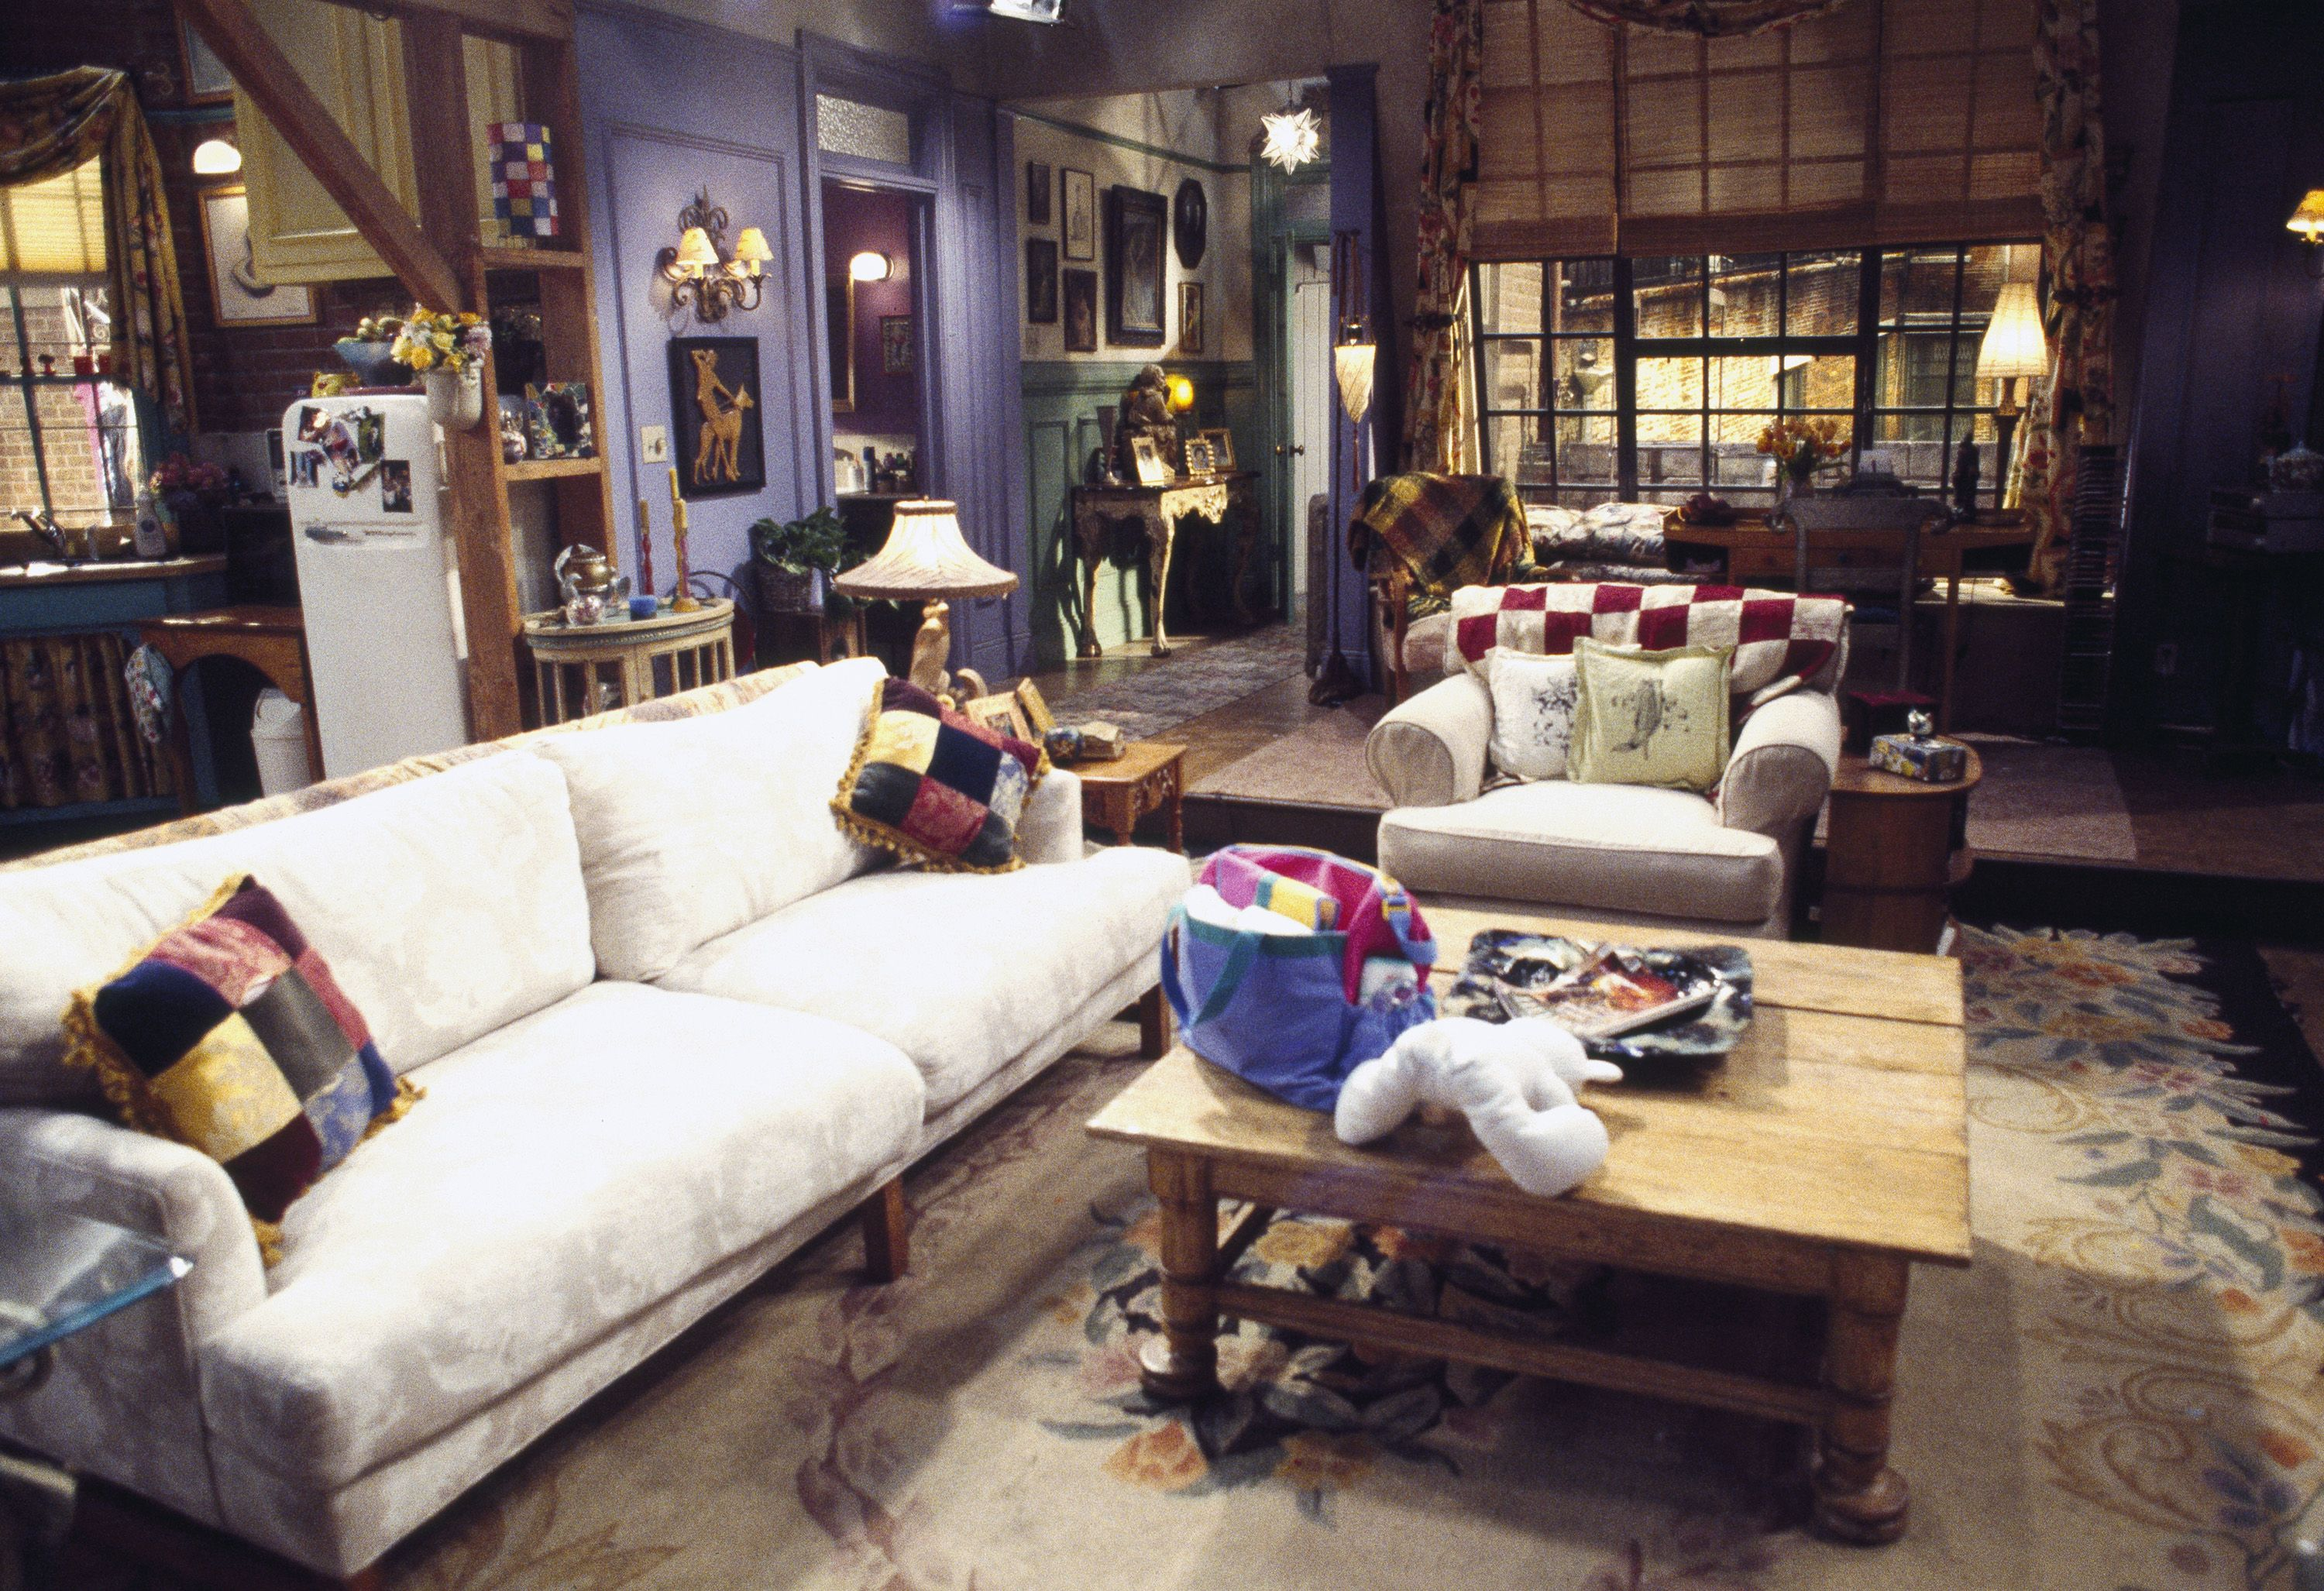 This Is How Much Monica S Apartment In Friends Would Really Cost How Much Tv Apartments Would Cost In Real Life,United Airlines Checked Baggage Fees For International Flights